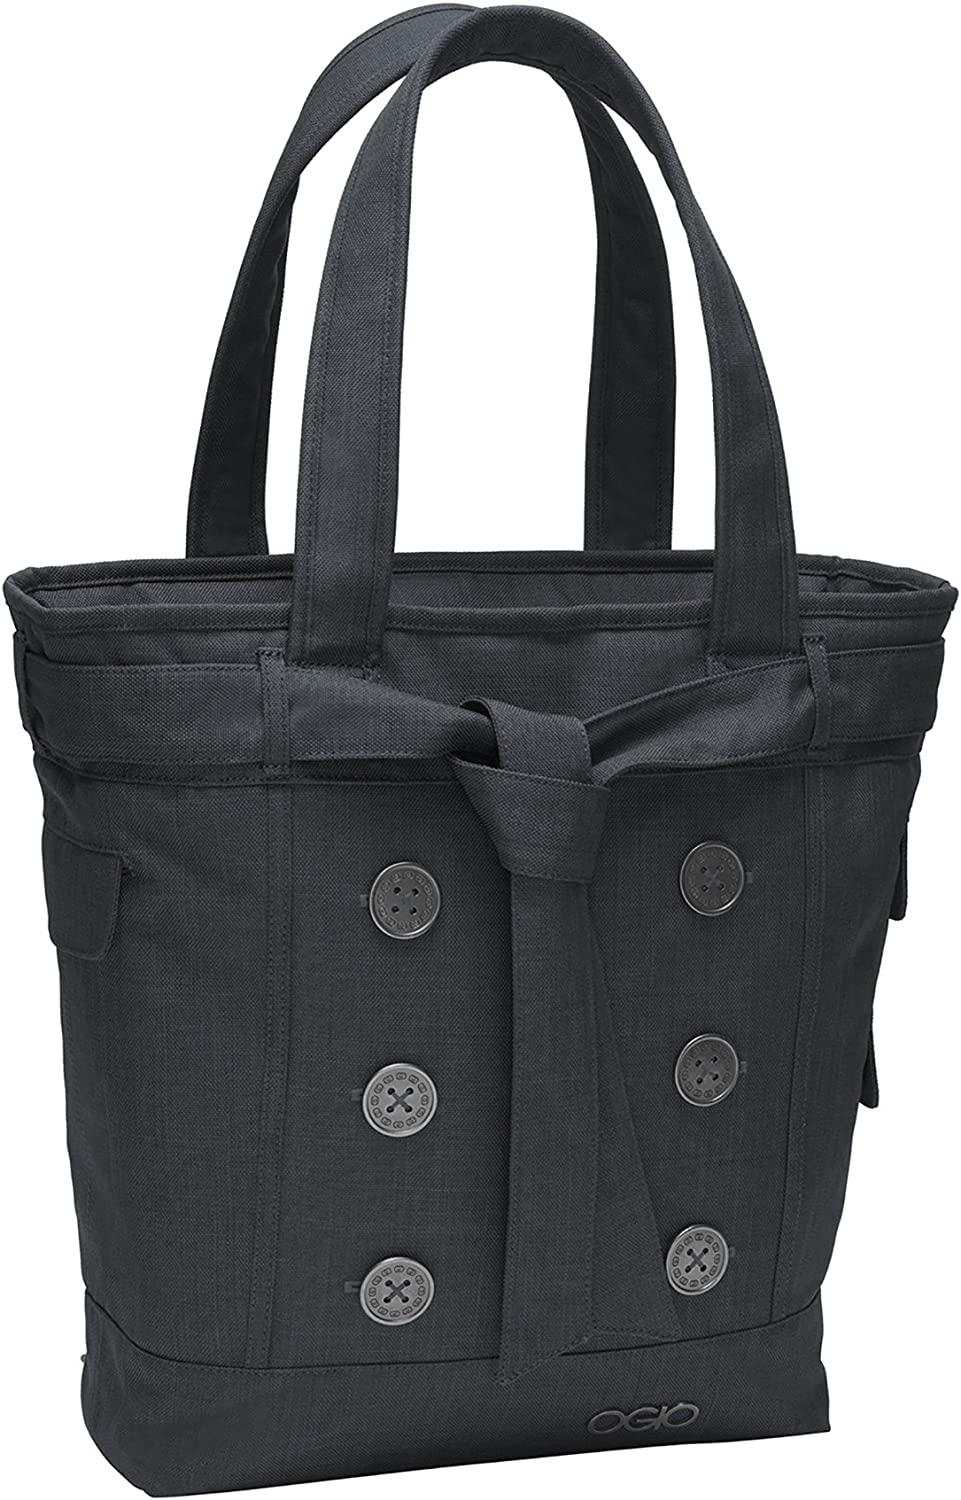 OGIO 414006_747 Storm Gray Melrose Tote, 1 Pack